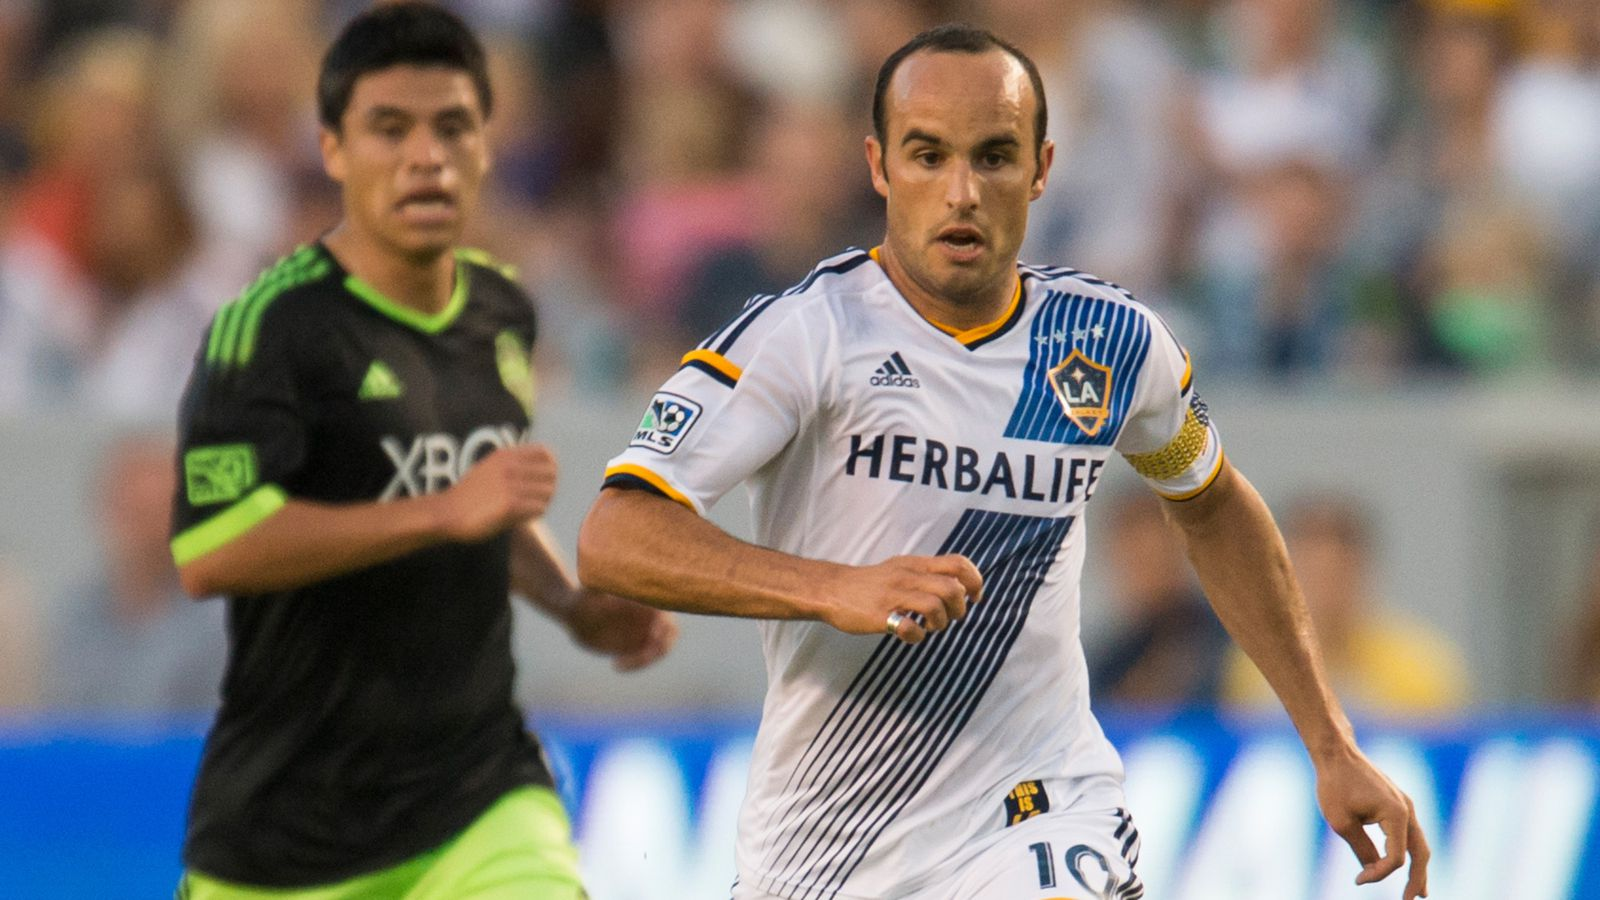 Sounders Vs Galaxy Live Stream How To Watch The Mls